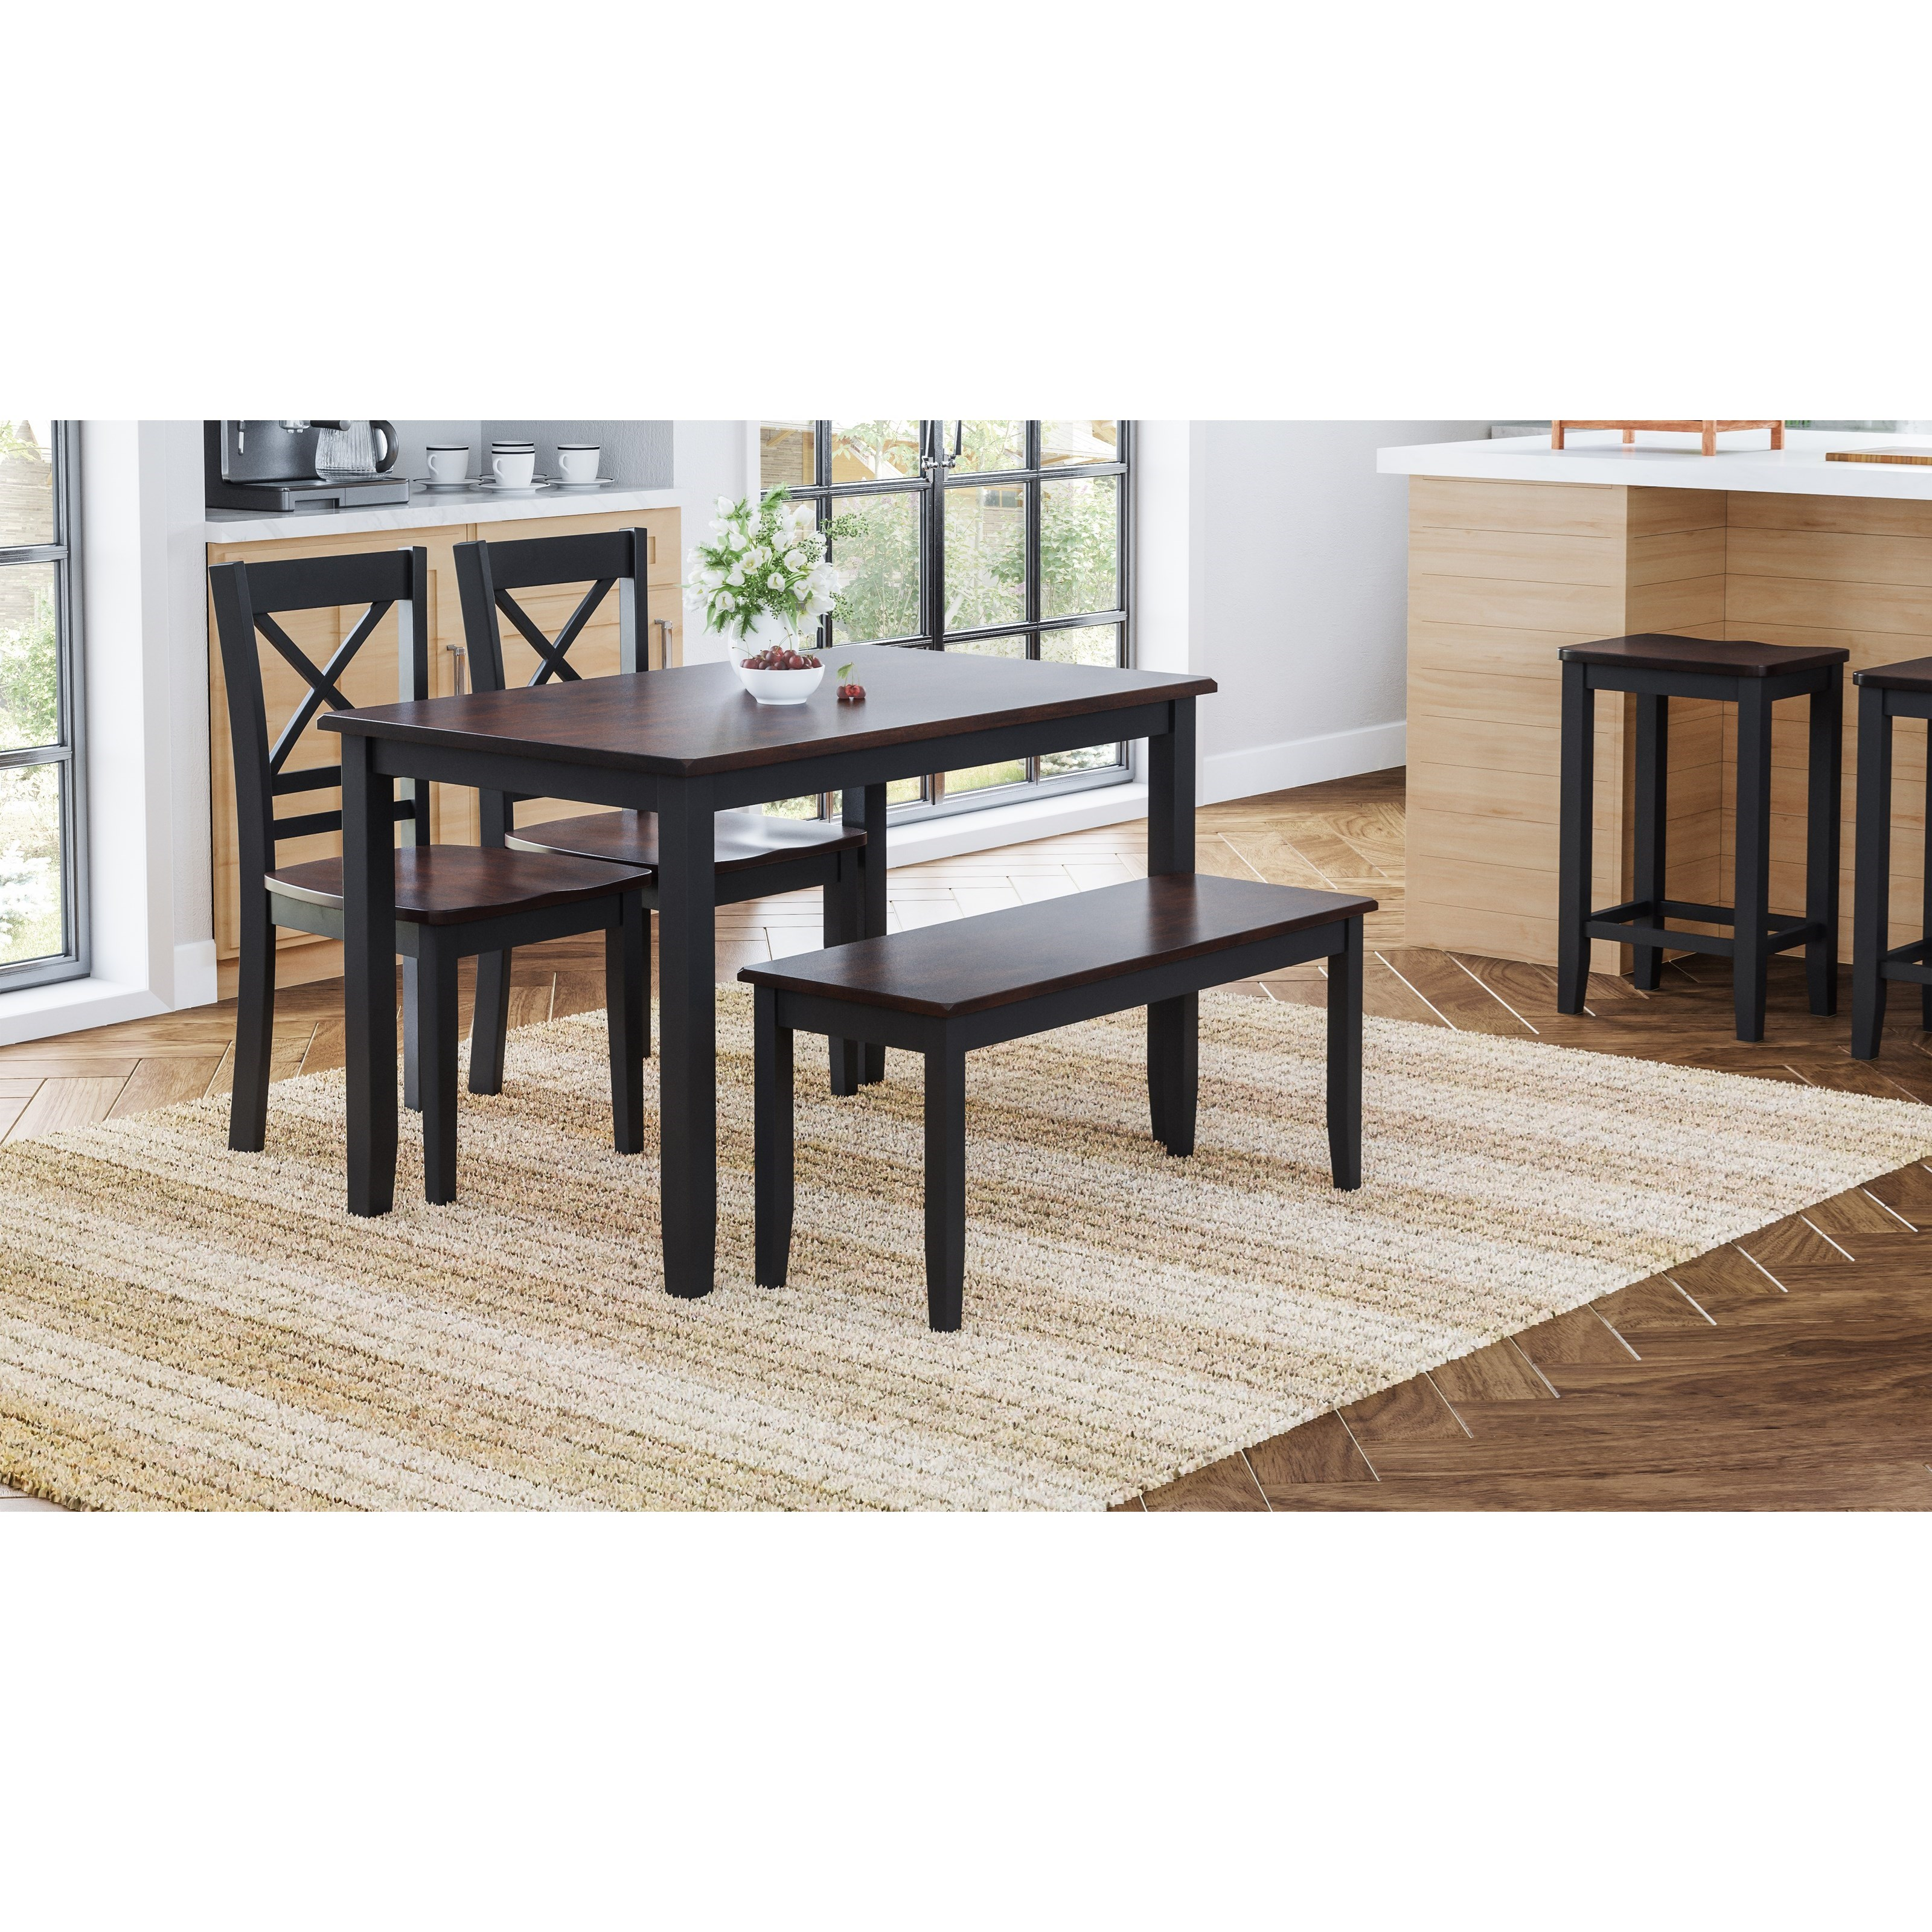 Asbury Park 4pk Dining by Jofran at Furniture and ApplianceMart